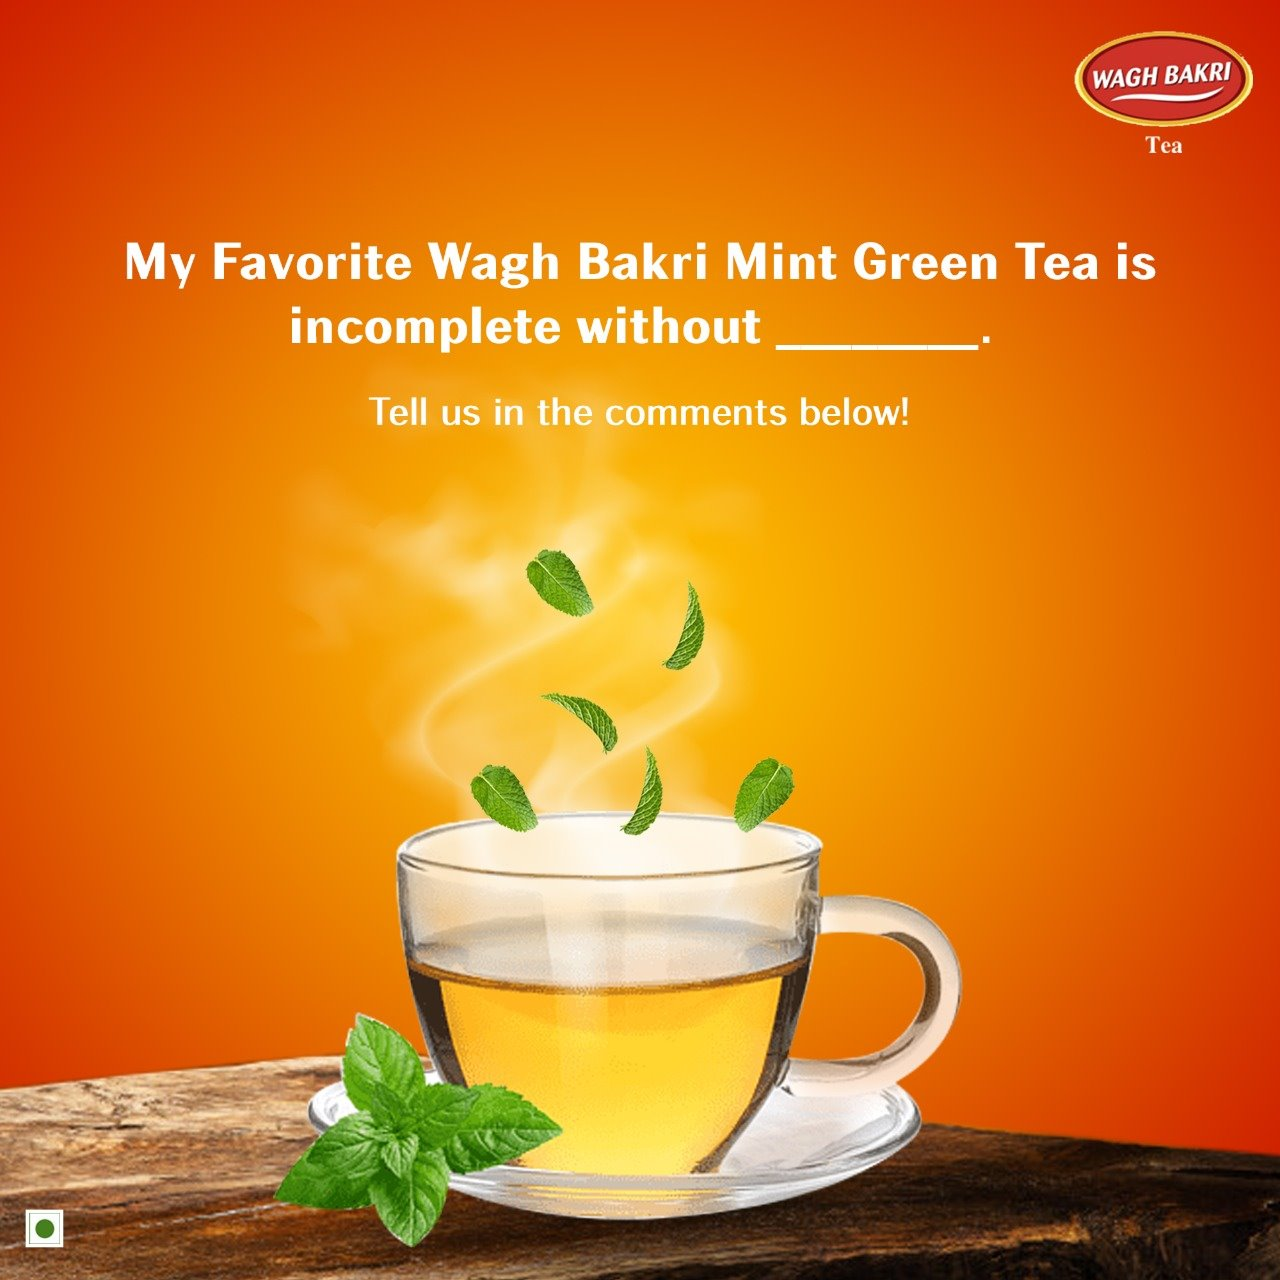 A rejuvenating cup of Wagh Bakri Mint Green Tea